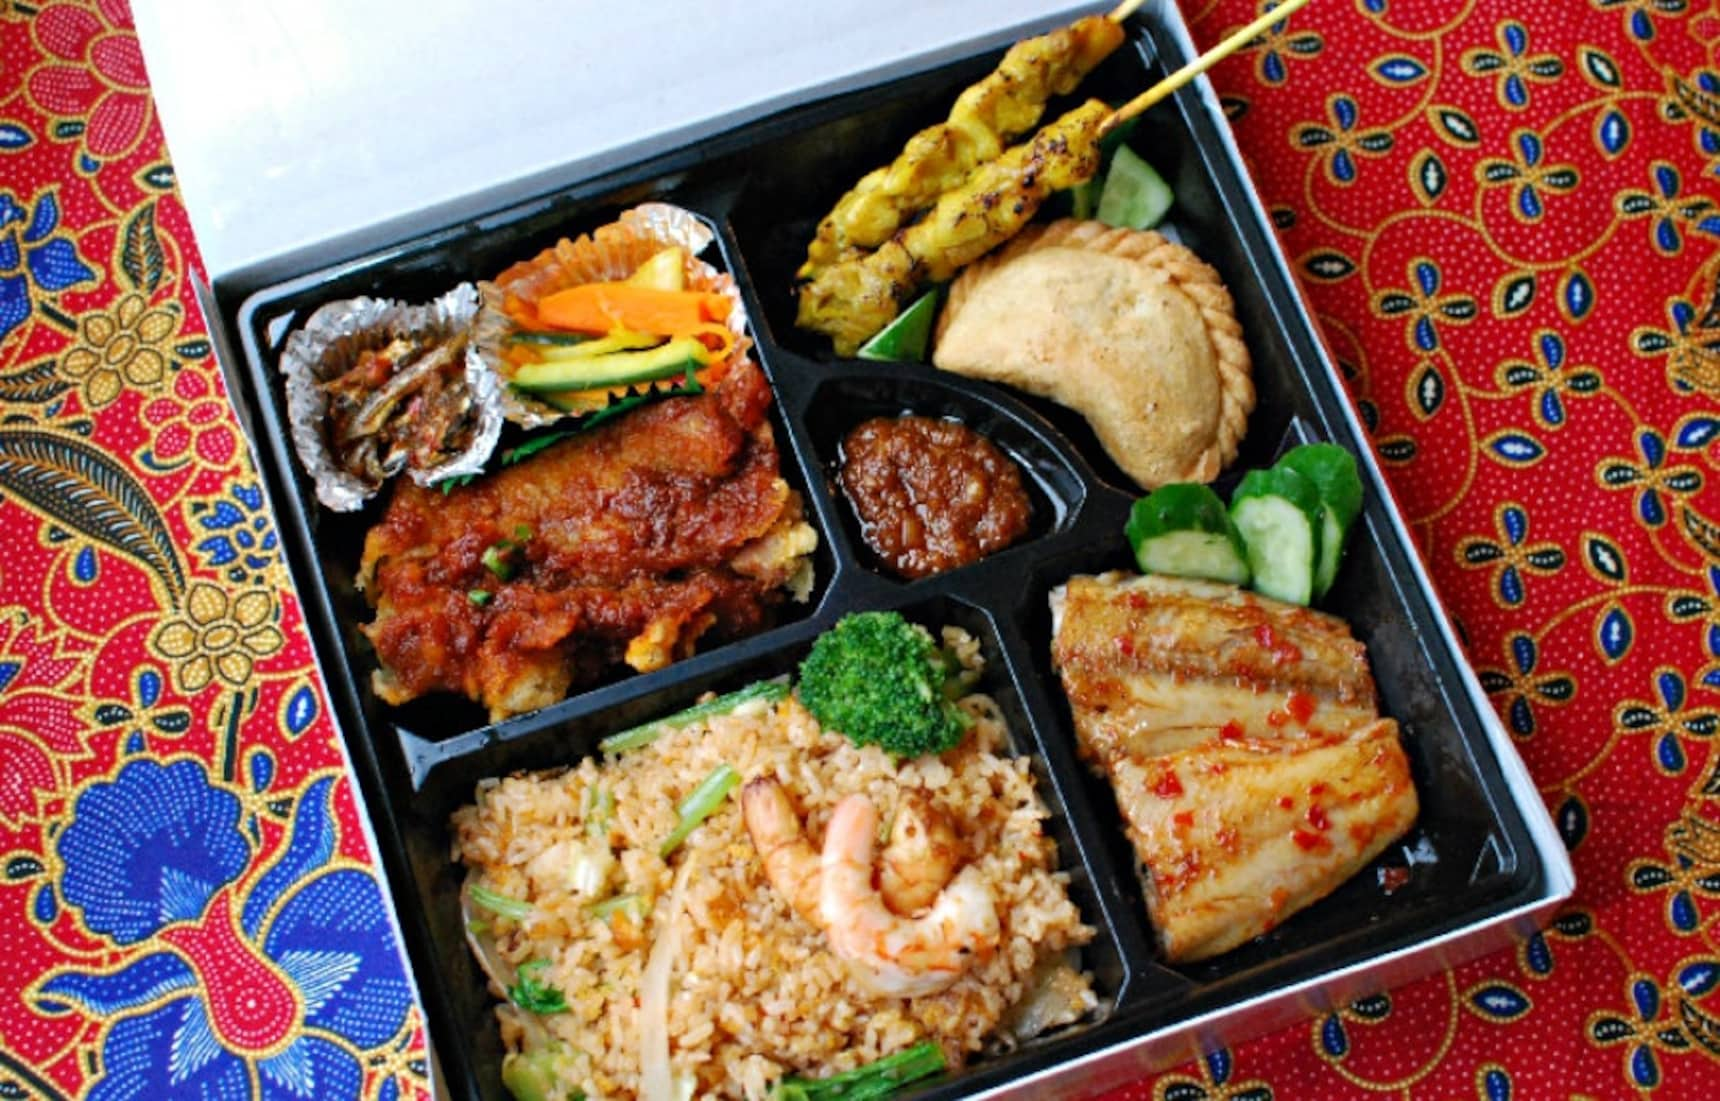 Halal Friendly Bento in Japan